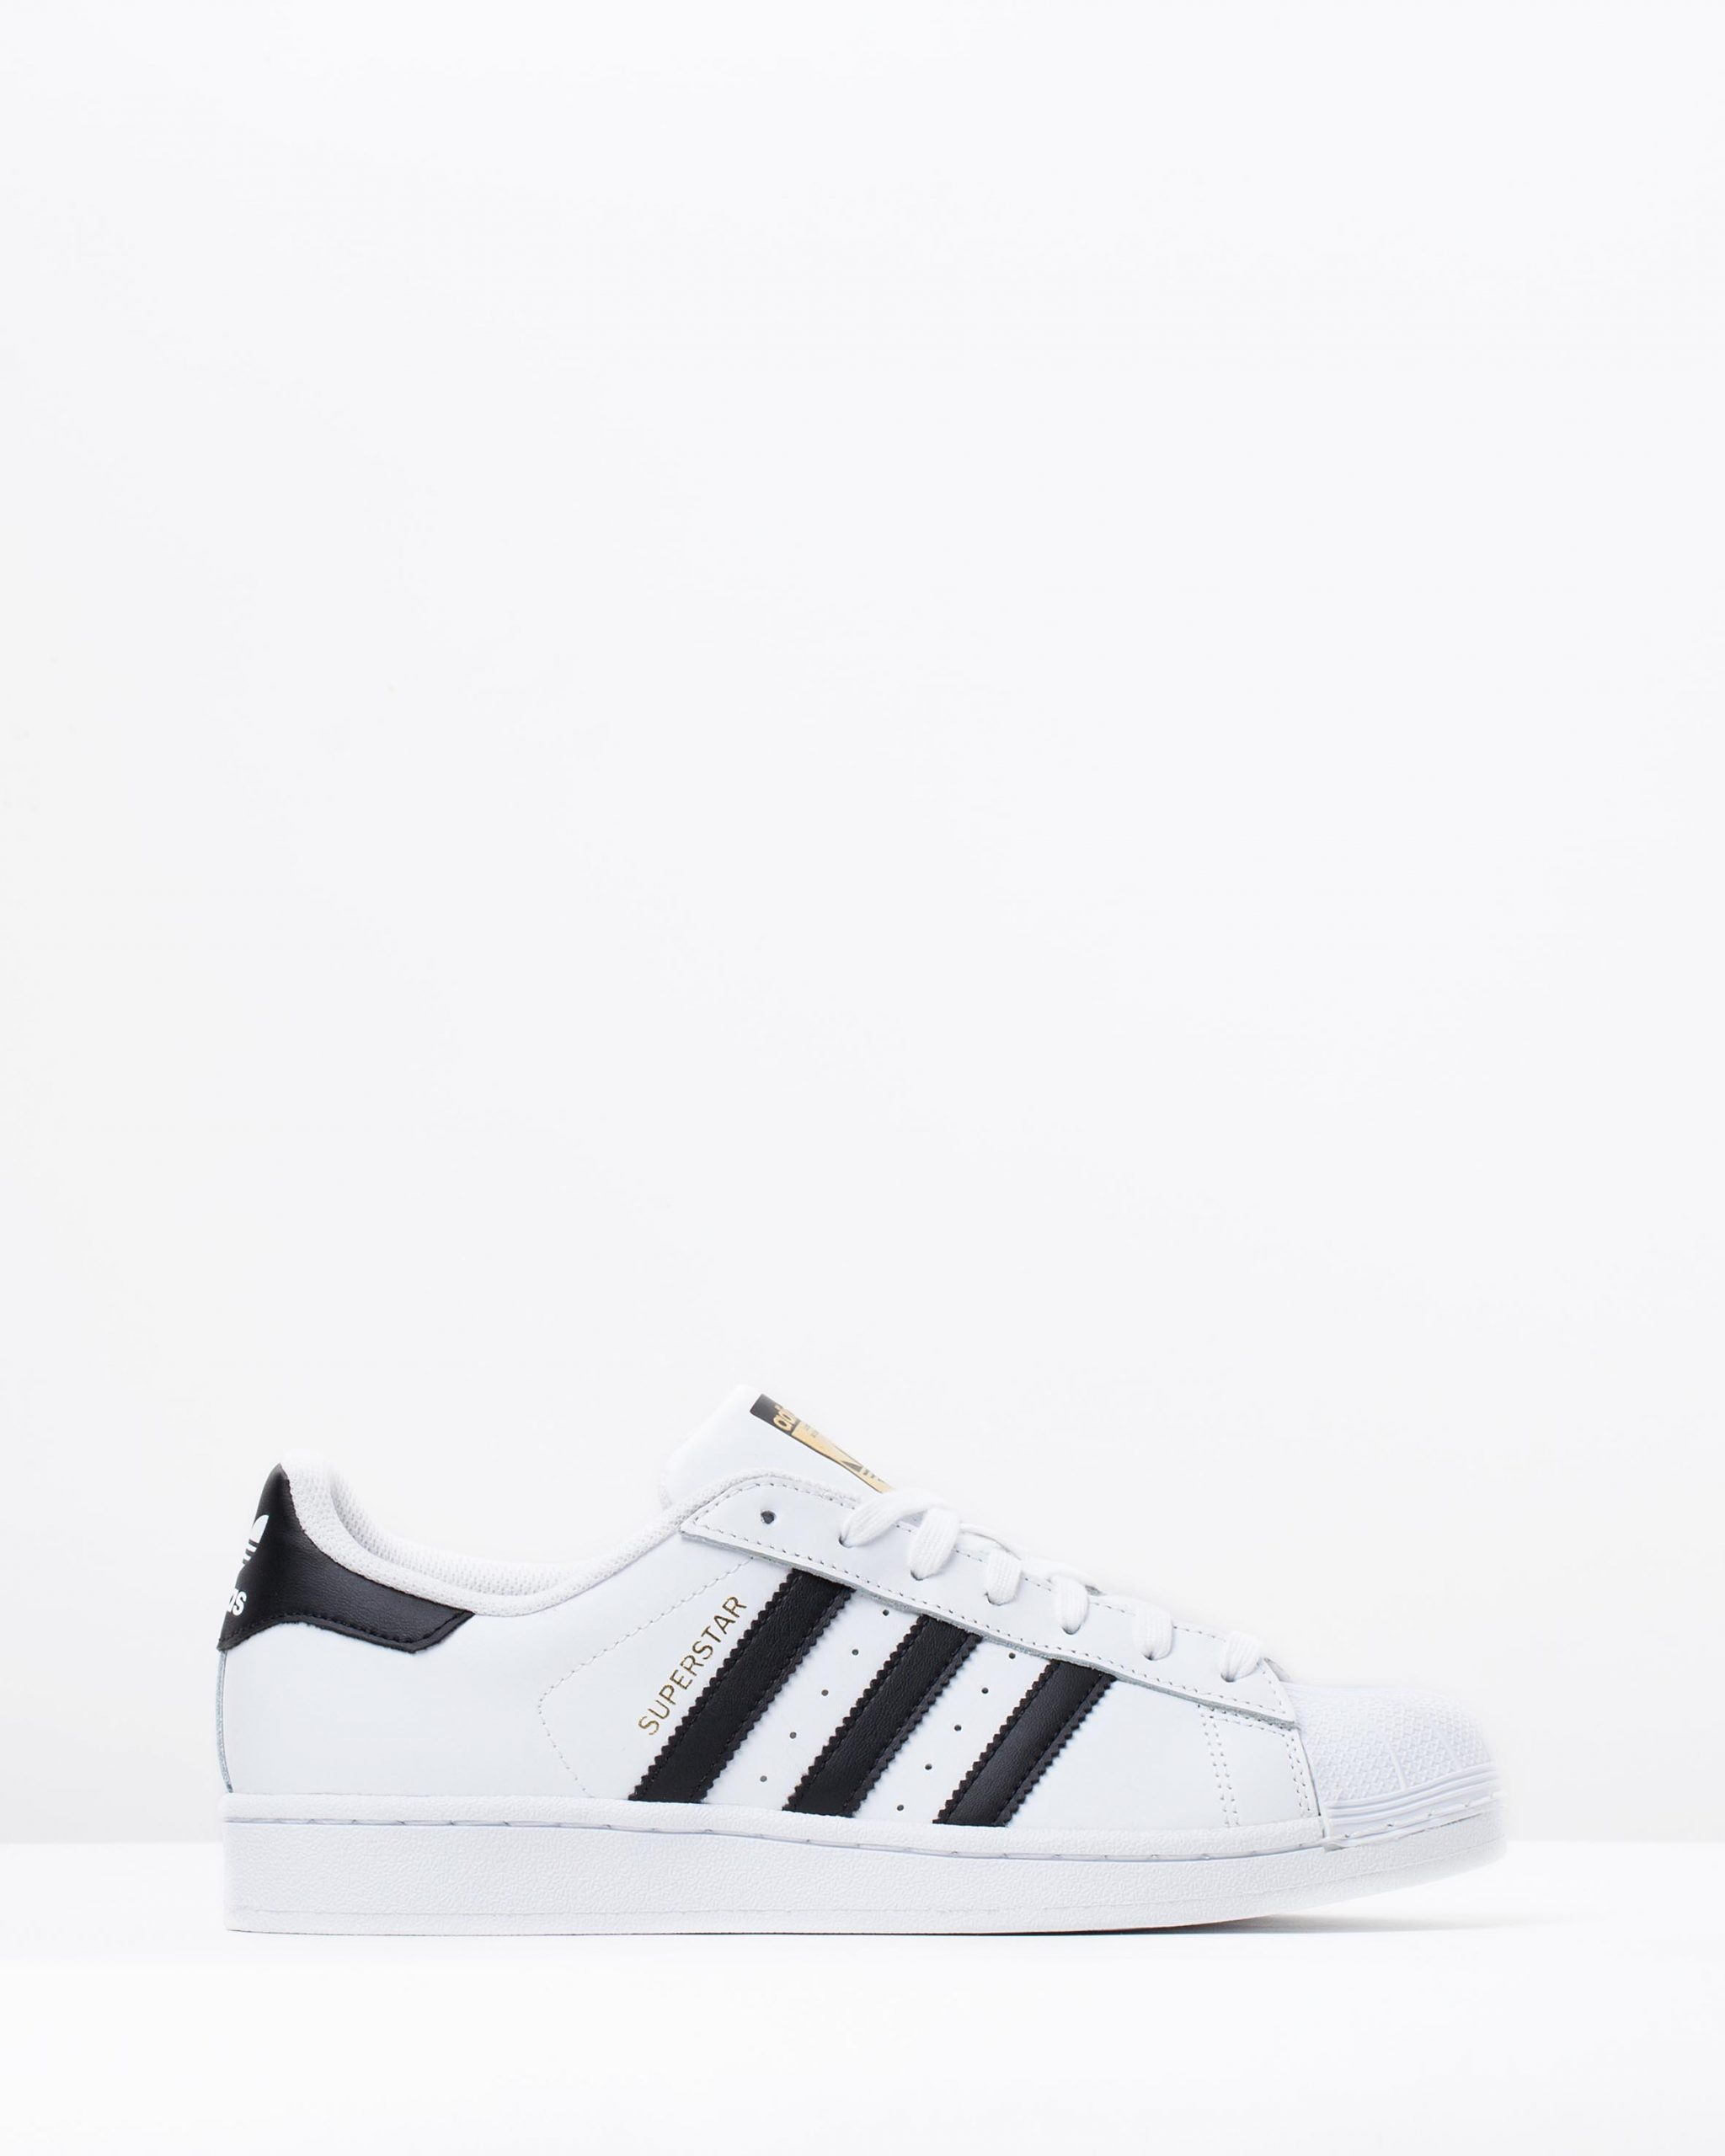 Adidas Originals Men's Superstar White & Black